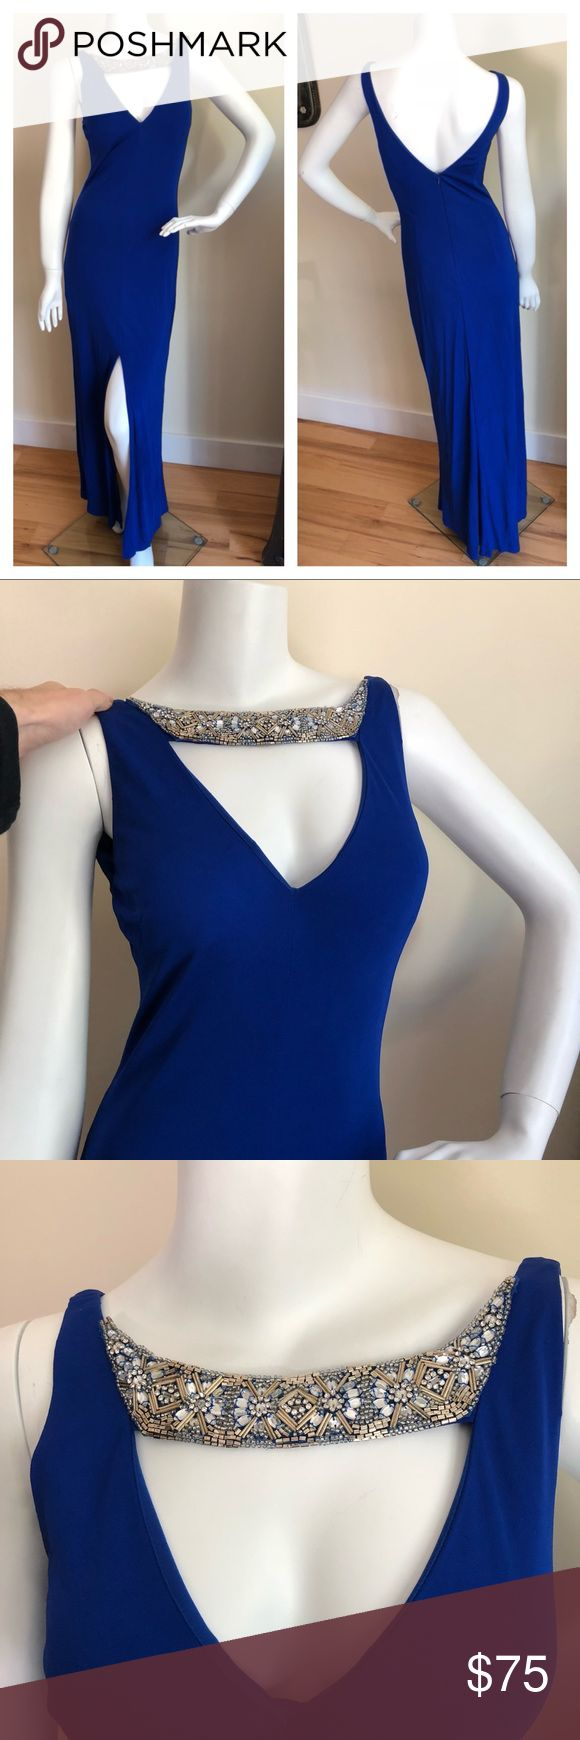 "NEW Aidan Mattox cobalt evening gown New with tags cobalt blue Aidan mattox full length evening gown. Front slit. Has busy pads so can wear without a bra. Front silver beading detailing. I don't model. Lined. Viscose. Length 58"" pit to pit 16"". Aidan Mattox Dresses"